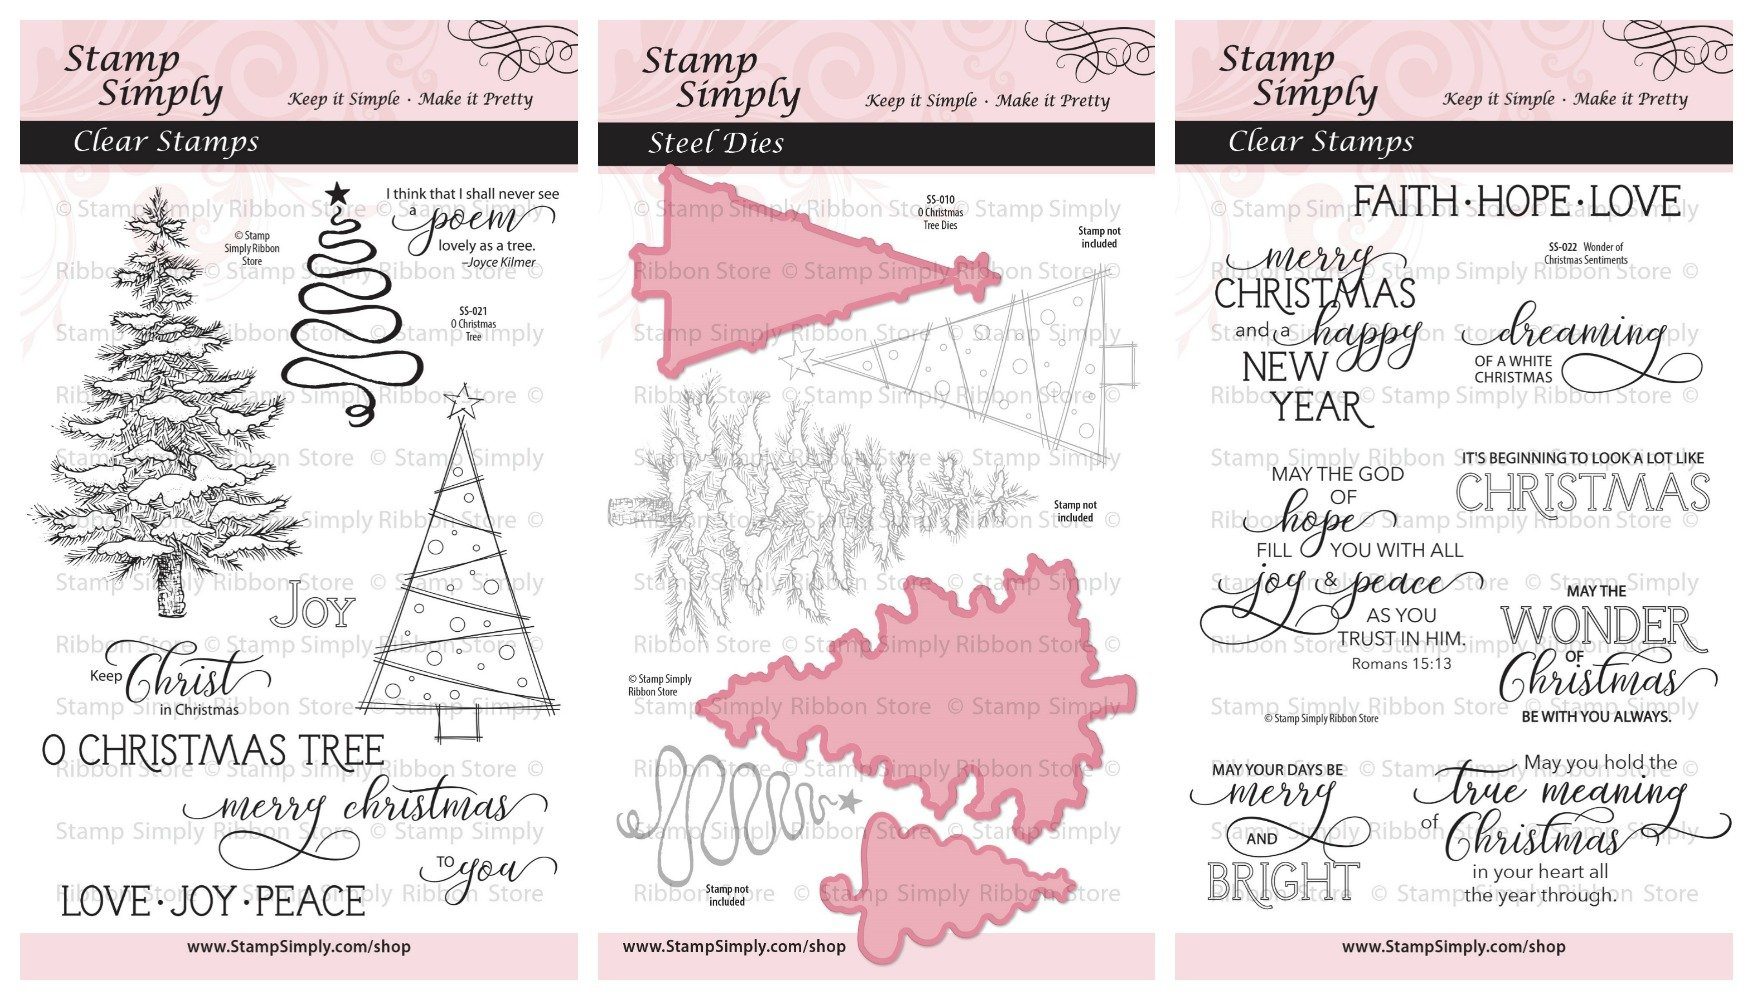 Stamp Simply Clear Stamps Die Trio Christmas Tree and Sentiments Christian Religious (3-Pack) 4x6 Inch Sheets - 21 Pieces